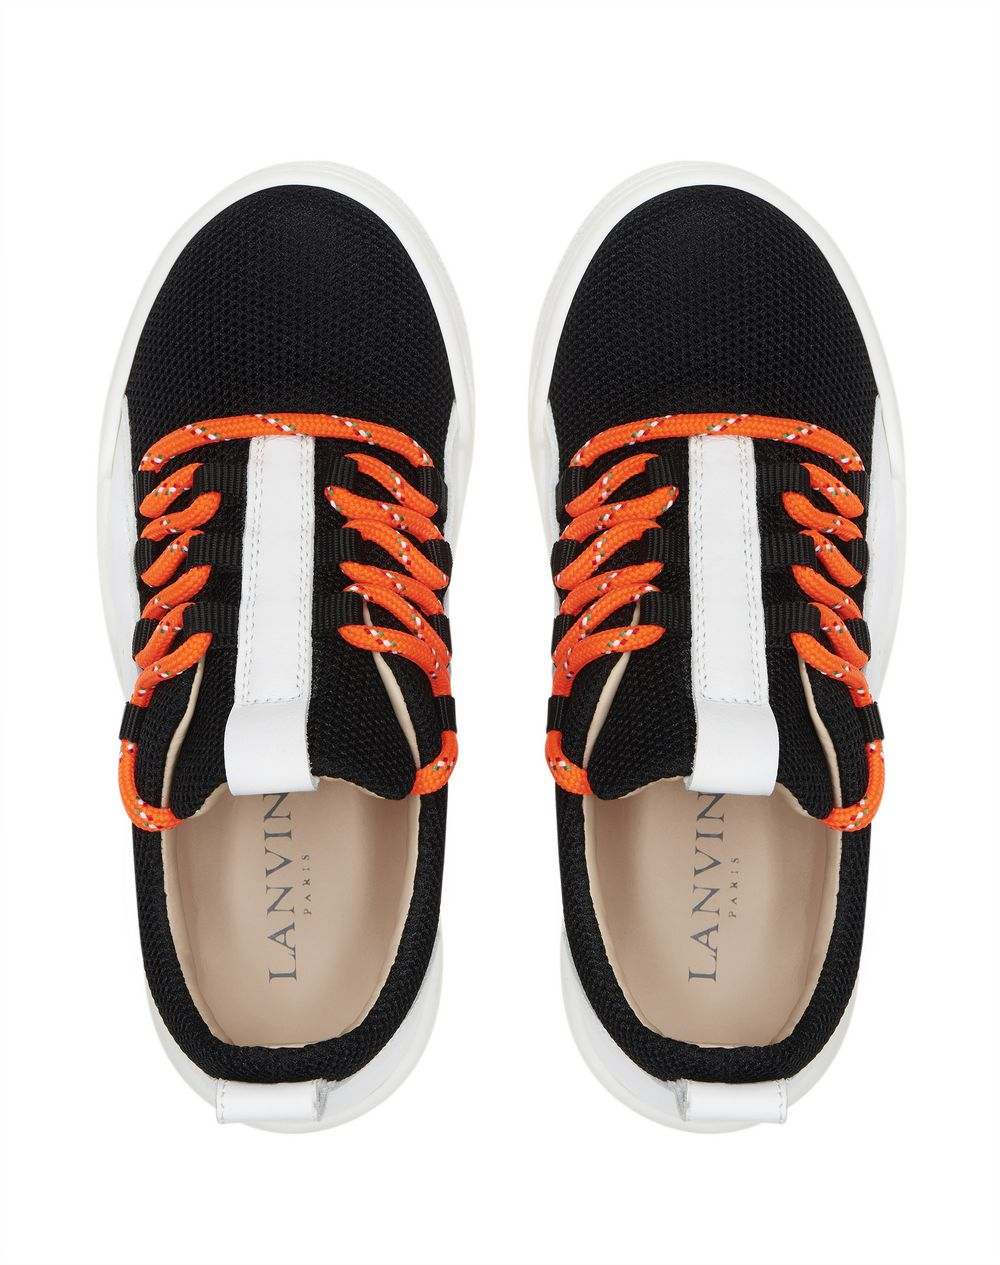 MIXED MATERIAL LOW-TOP SNEAKERS       - Lanvin